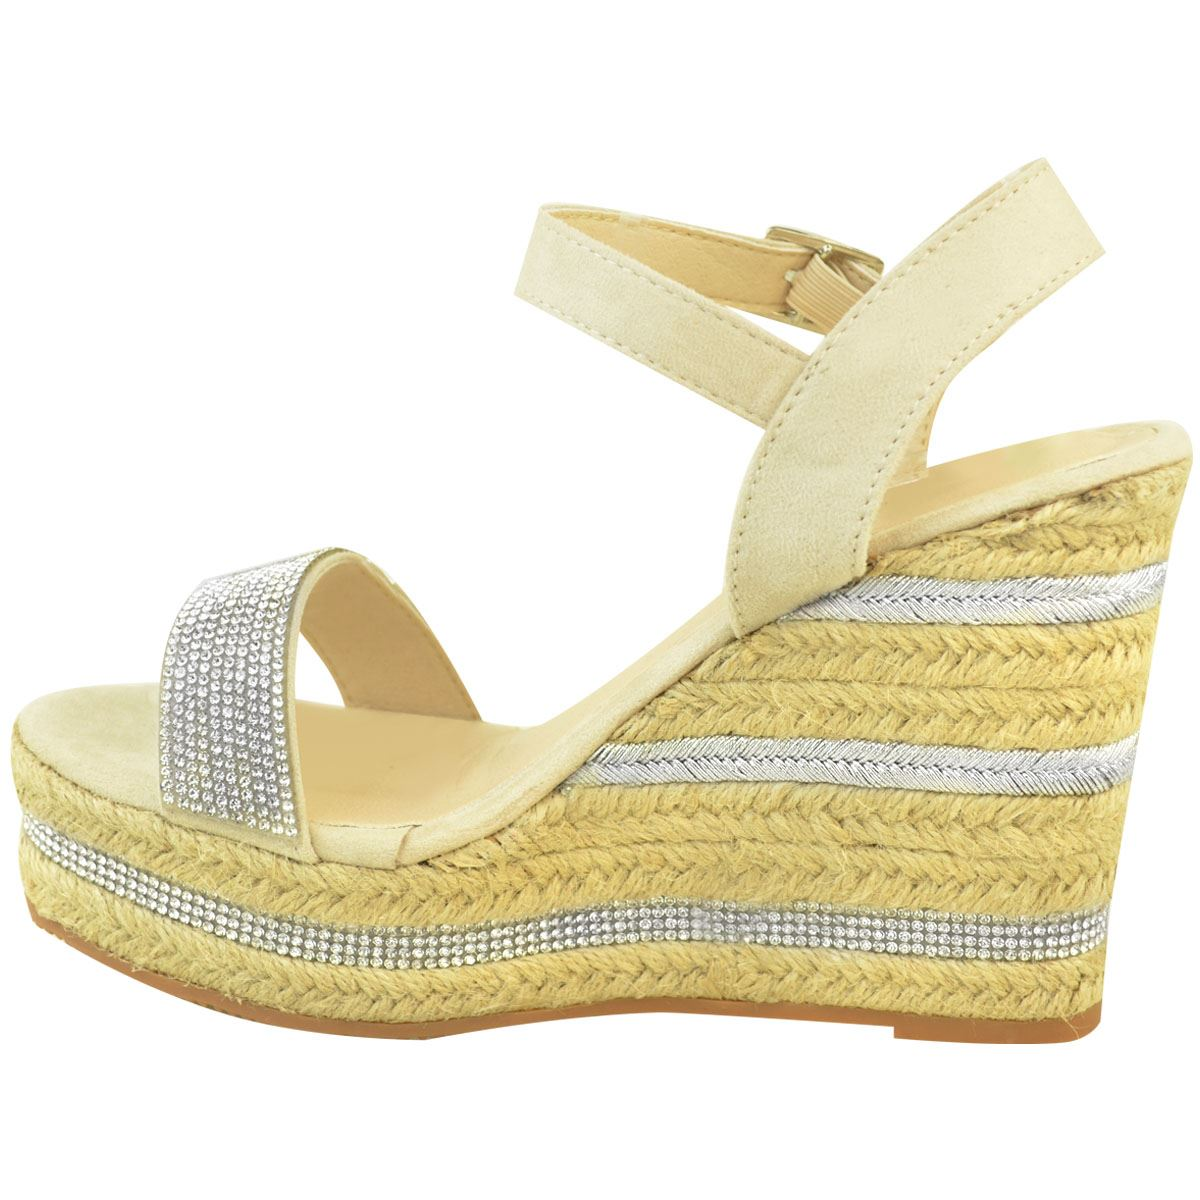 Womens-Ladies-Wedged-High-Heel-Sandals-Raffia-Diamante-Party-Shoes-Summer-Size thumbnail 5